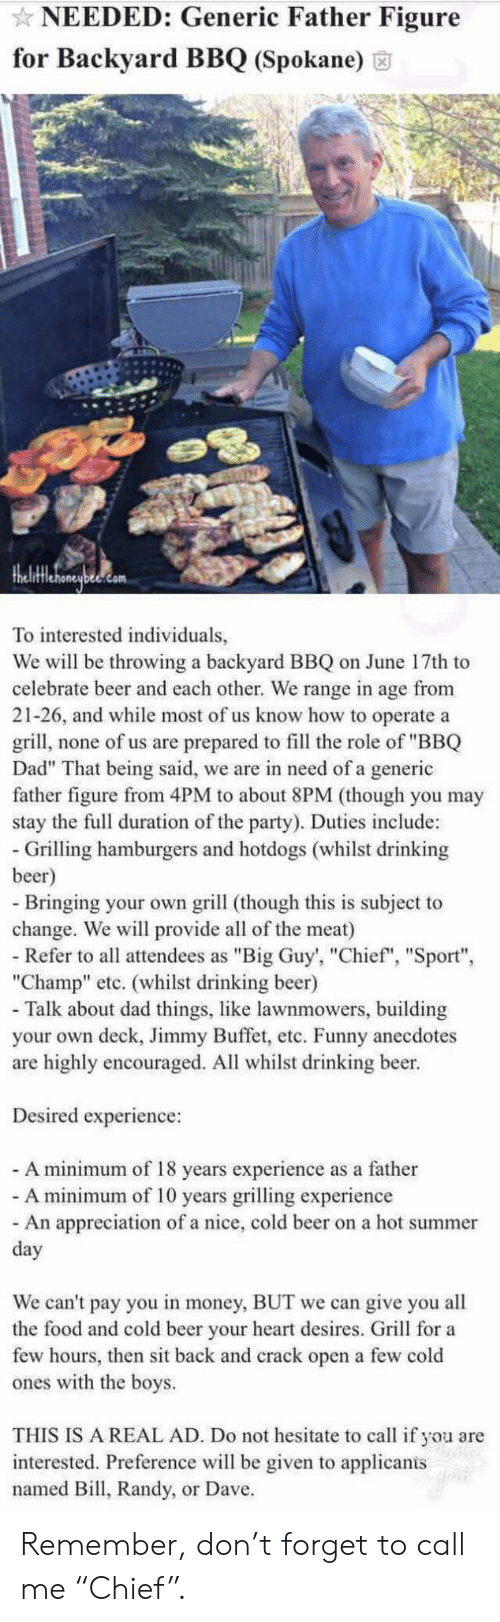 "Beer, Dad, and Drinking: NEEDED: Generic Father Figure  for Backyard BBQ (Spokane)  To interested individuals,  We will be throwing a backyard BBQ on June 17th to  celebrate beer and each other. We range in age from  21-26, and while most of us know how to operate a  grill, none of us are prepared to fill the role of ""BBQ  Dad"" That being said, we are in need of a generic  father figure from 4PM to about 8PM (though you may  stay the full duration of the party). Duties include:  - Grilling hamburgers and hotdogs (whilst drinking  beer)  - Bringing your own grill (though this is subject to  change. We will provide all of the meat)  - Refer to all attendees as ""Big Guy', ""Chief"", ""Sport""  ""Champ"" etc. (whilst drinking beer)  - Talk about dad things, like lawnmowers, building  your own deck, Jimmy Buffet, etc. Funny anecdotes  are highly encouraged. All whilst drinking beer.  Desired experience:  - A minimum of 18 years experience as a father  - A minimum of 10 years grilling experience  - An appreciation of a nice, cold beer on a hot summer  day  We can't pay you in money, BUT we can give you all  the food and cold beer your heart desires. Grill for a  few hours, then sit back and crack open a few cold  ones with the boys.  THIS IS A REAL AD. Do not hesitate to call if you are  interested. Preference will be given to applicanis  named Bill, Randy, or Dave. Remember, don't forget to call me ""Chief""."